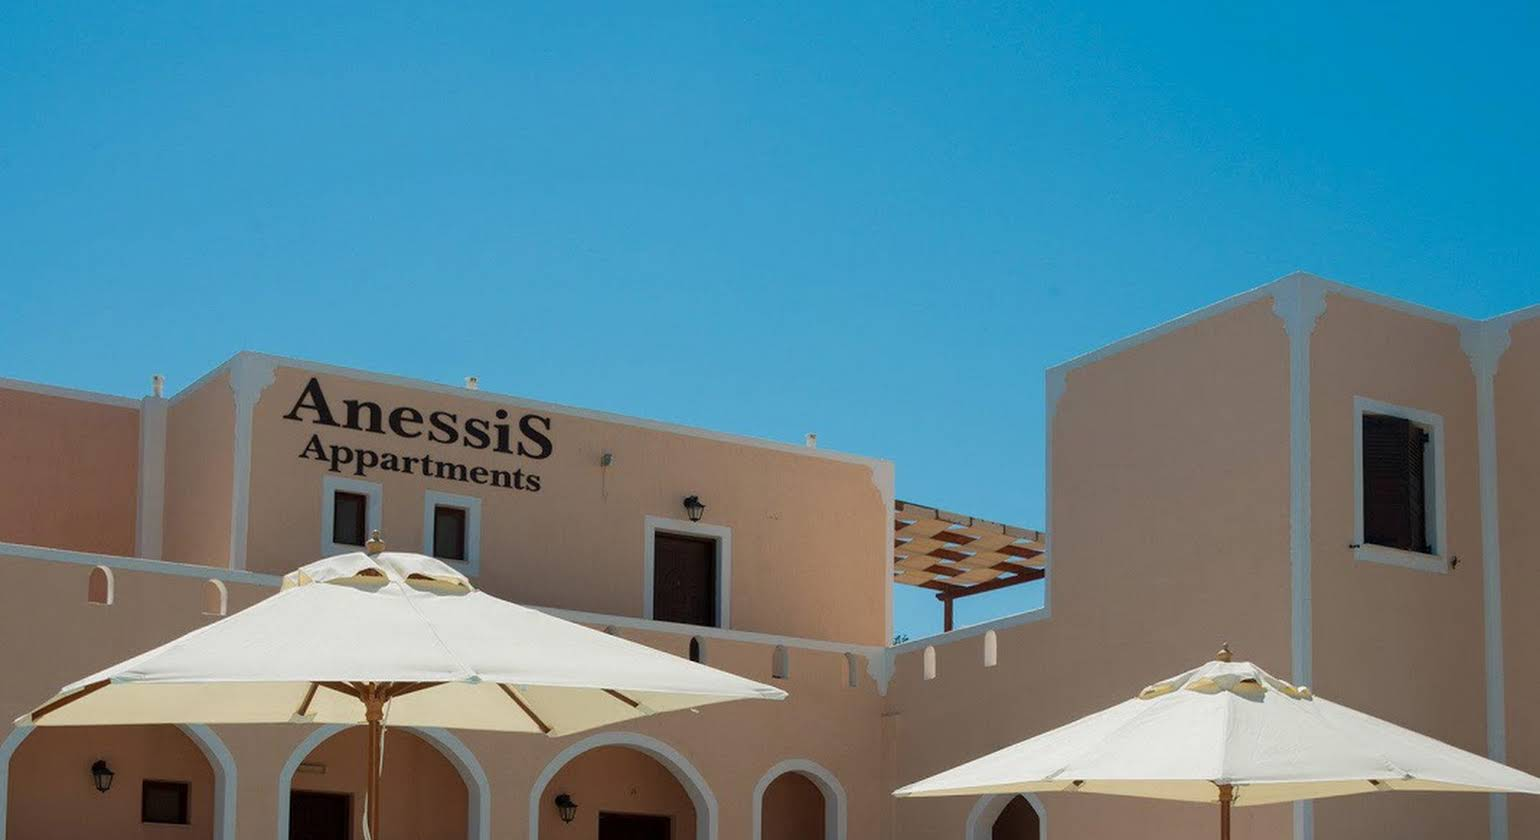 Anessis Apartments